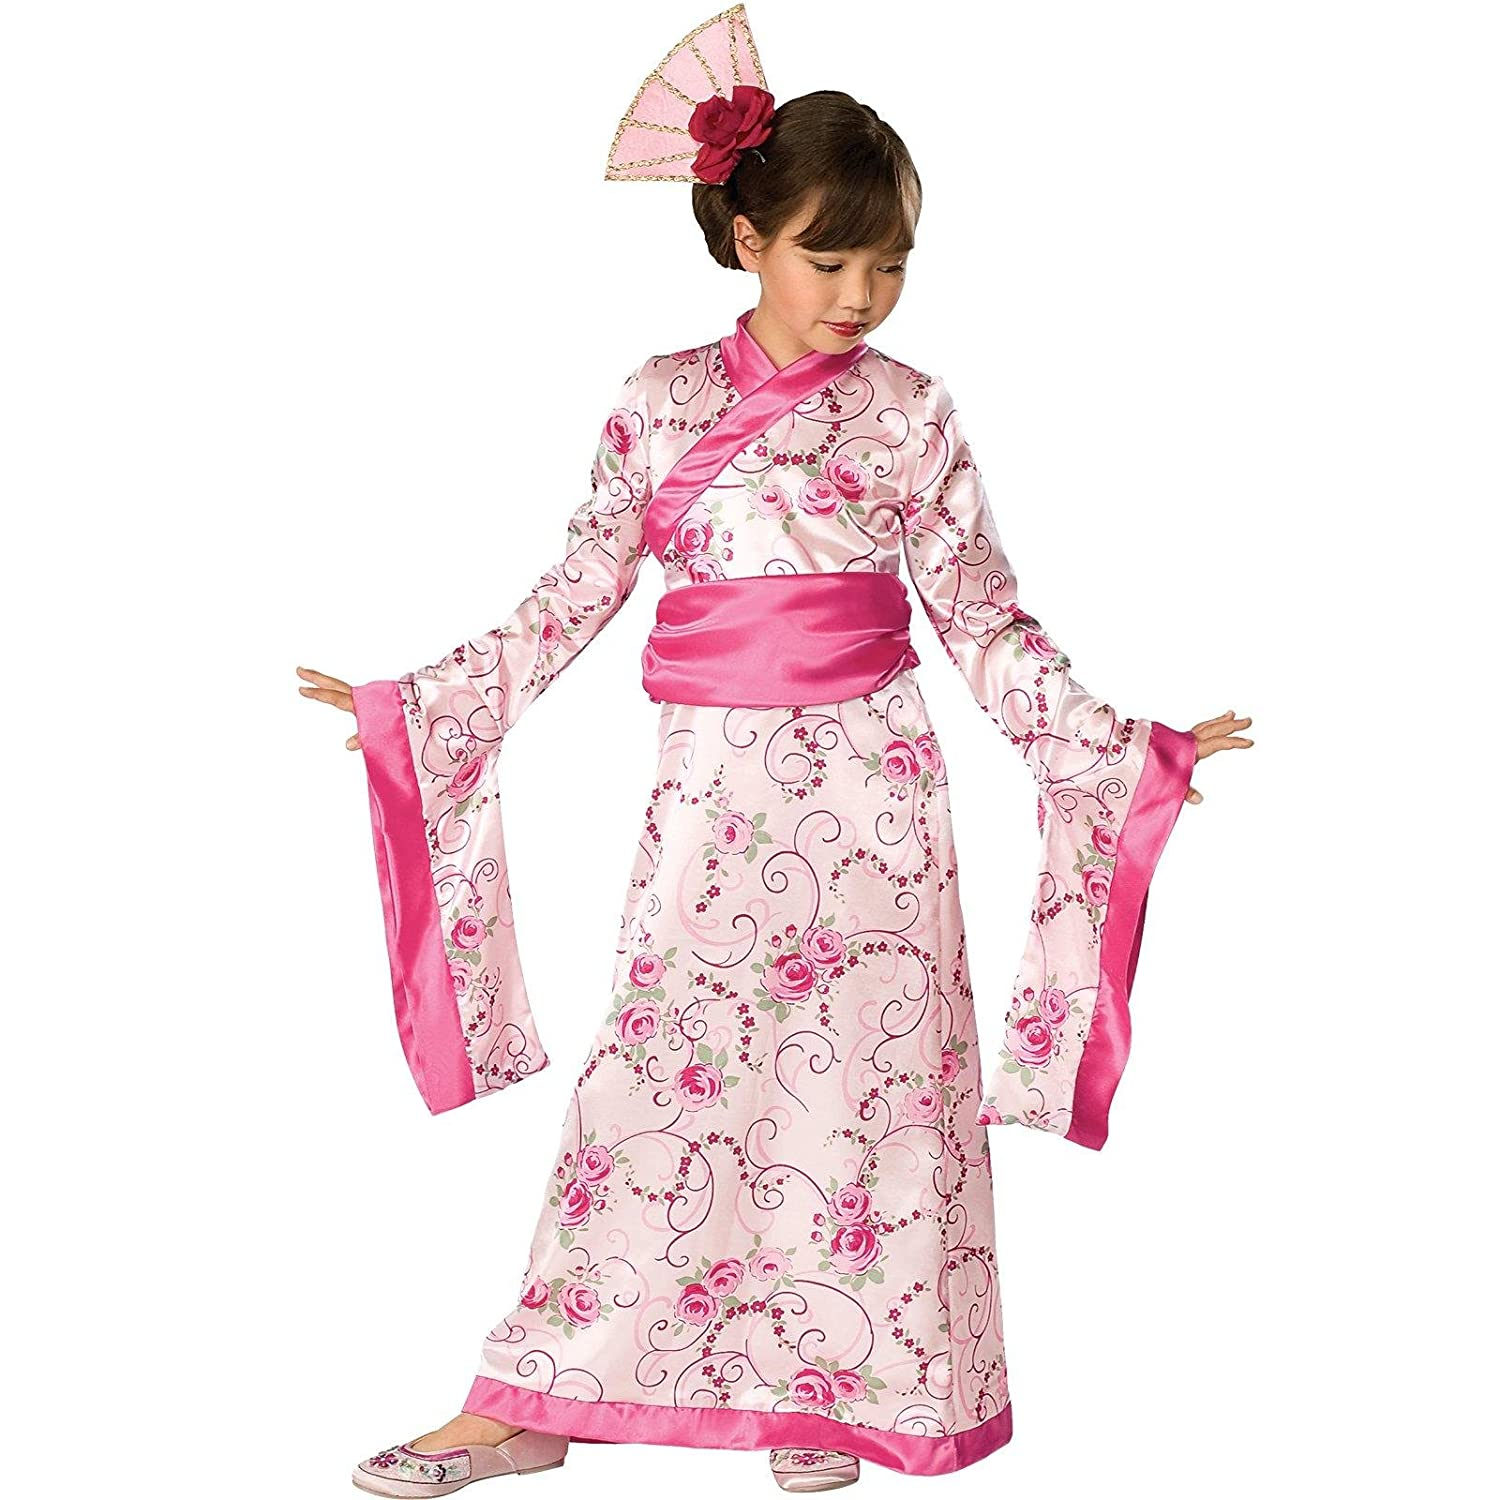 Amazon.com: Rubies Girls Asian Princess Halloween Kimono Dress ...